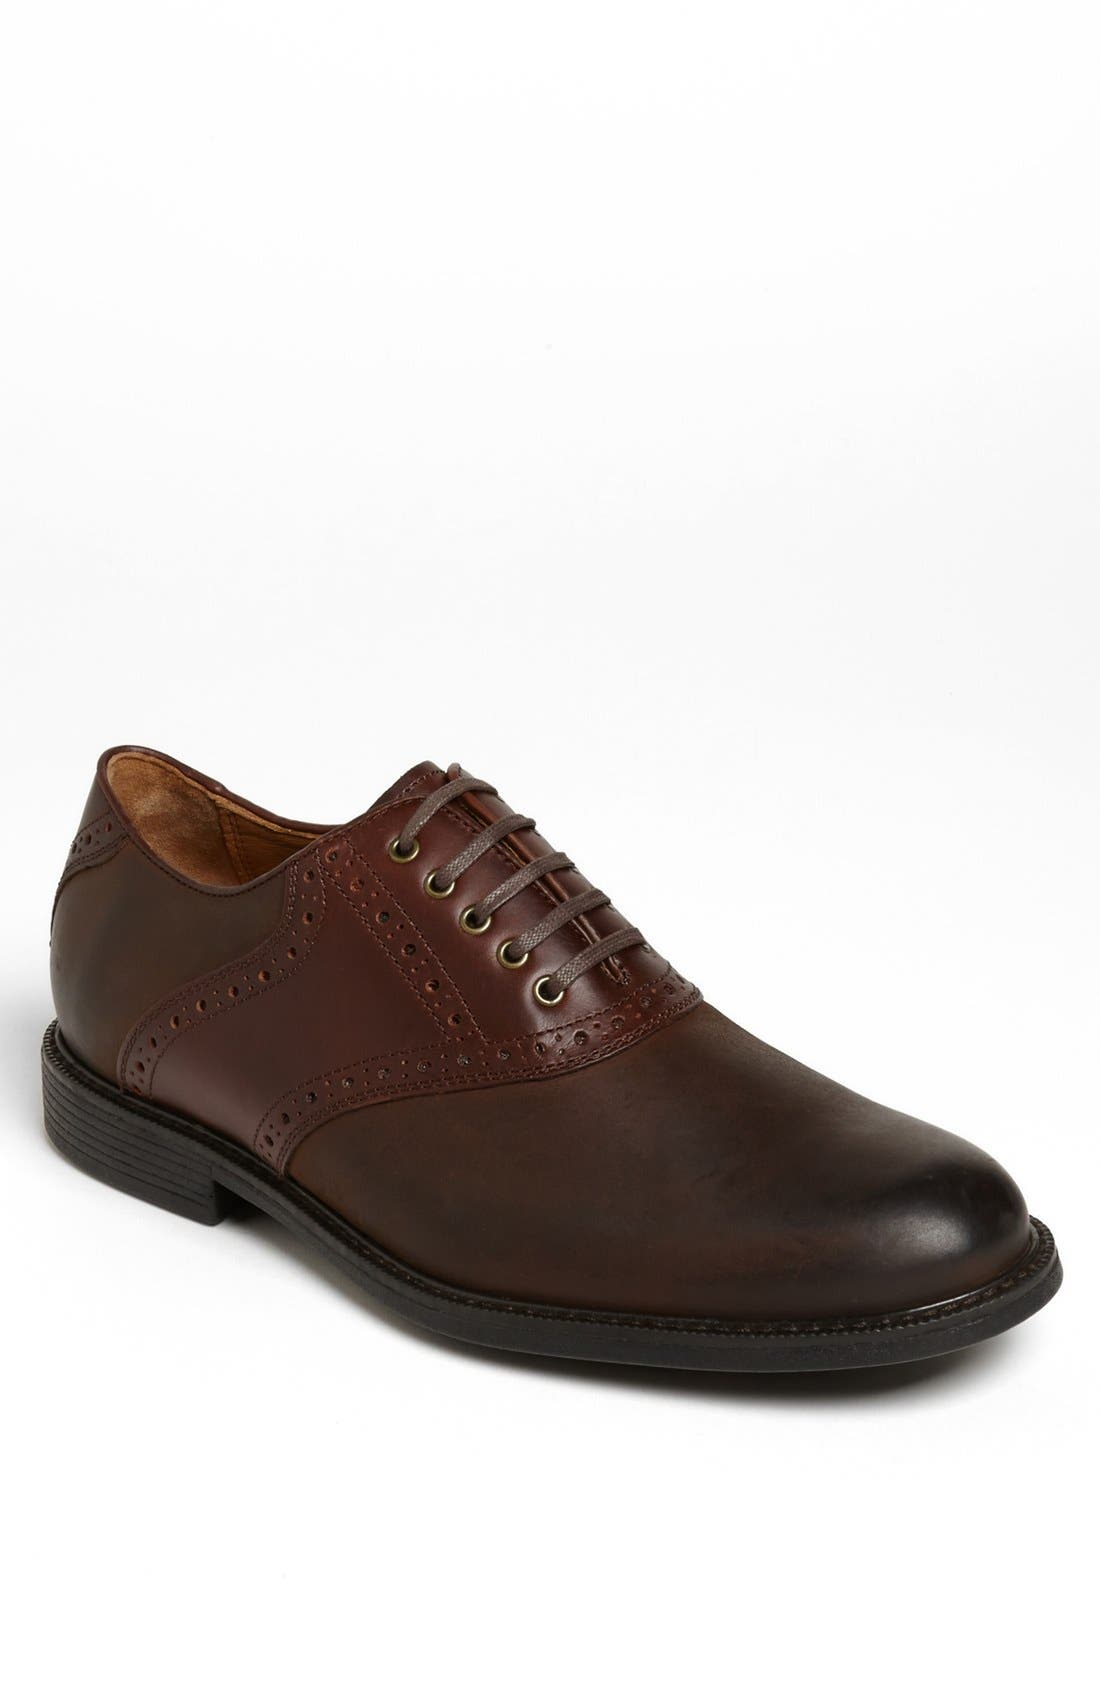 JOHNSTON & MURPHY 'Cardell' Waterproof Saddle Oxford